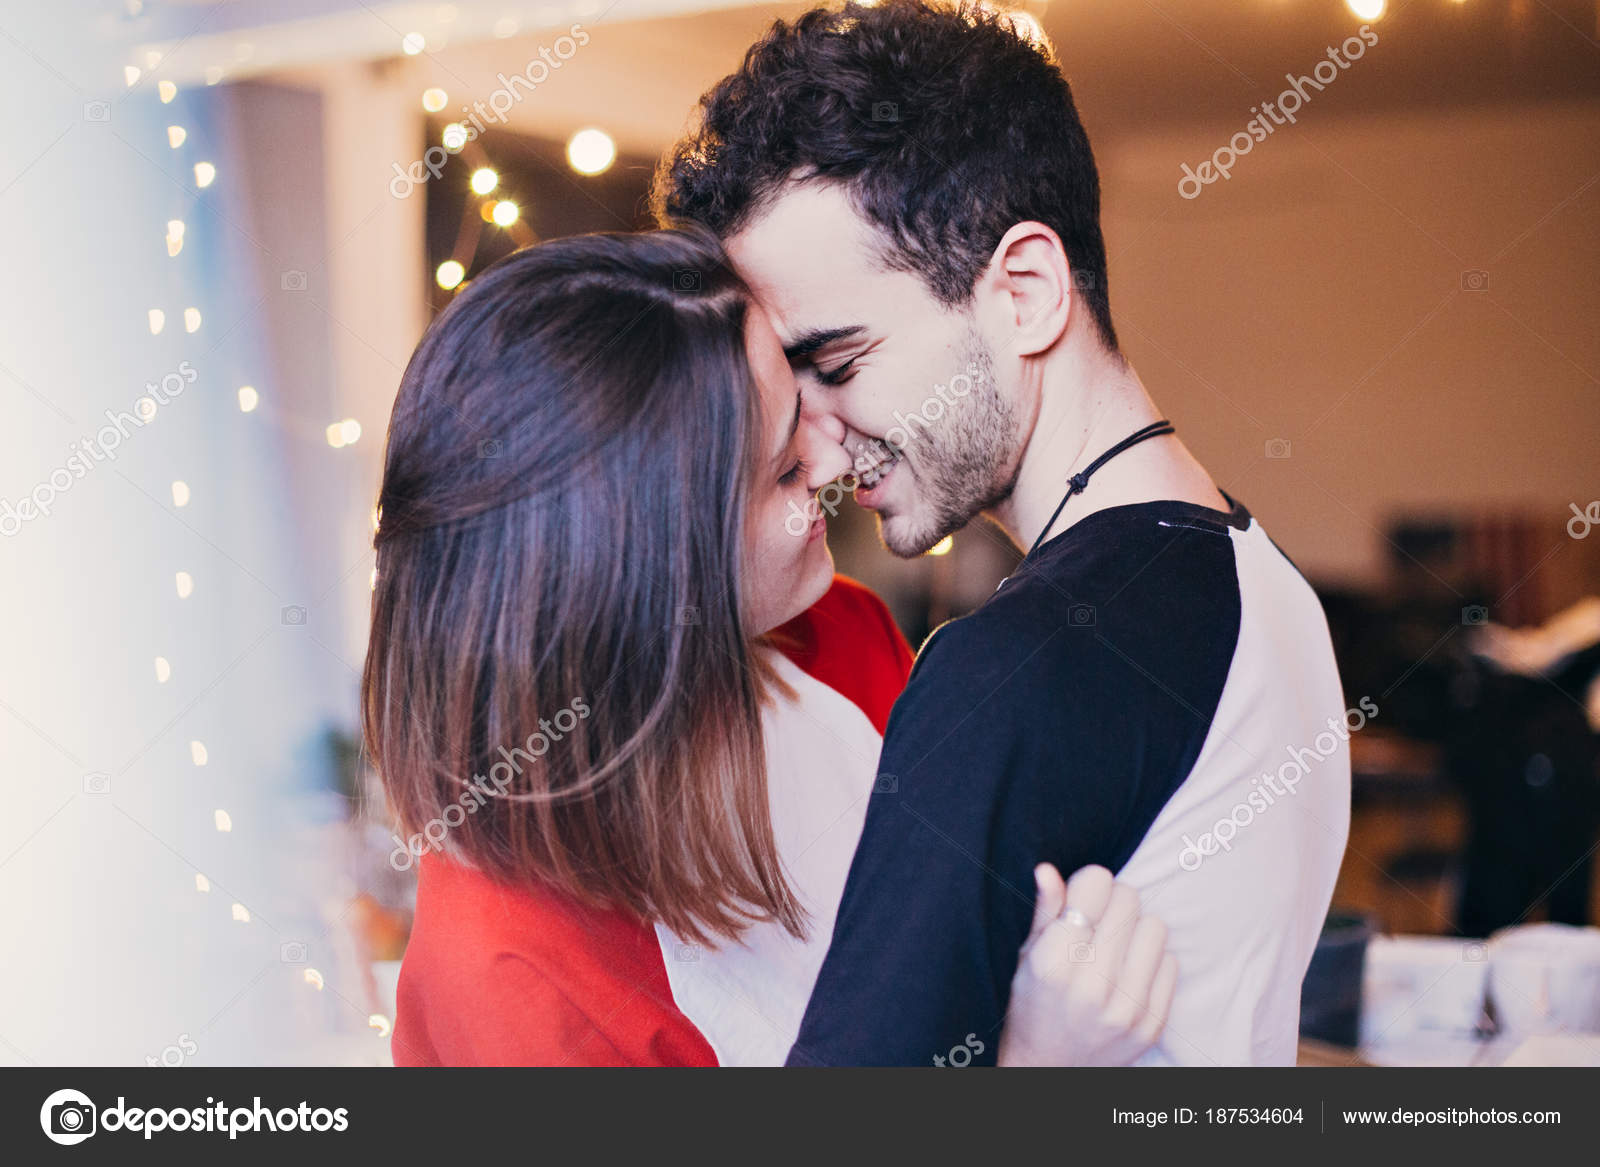 Cute sensual young couple love smiling hugging cuddling kissing cute and sensual young couple in love smiling hugging cuddling and kissing inside house or apartment teenagers or millennials truly in love with each altavistaventures Images